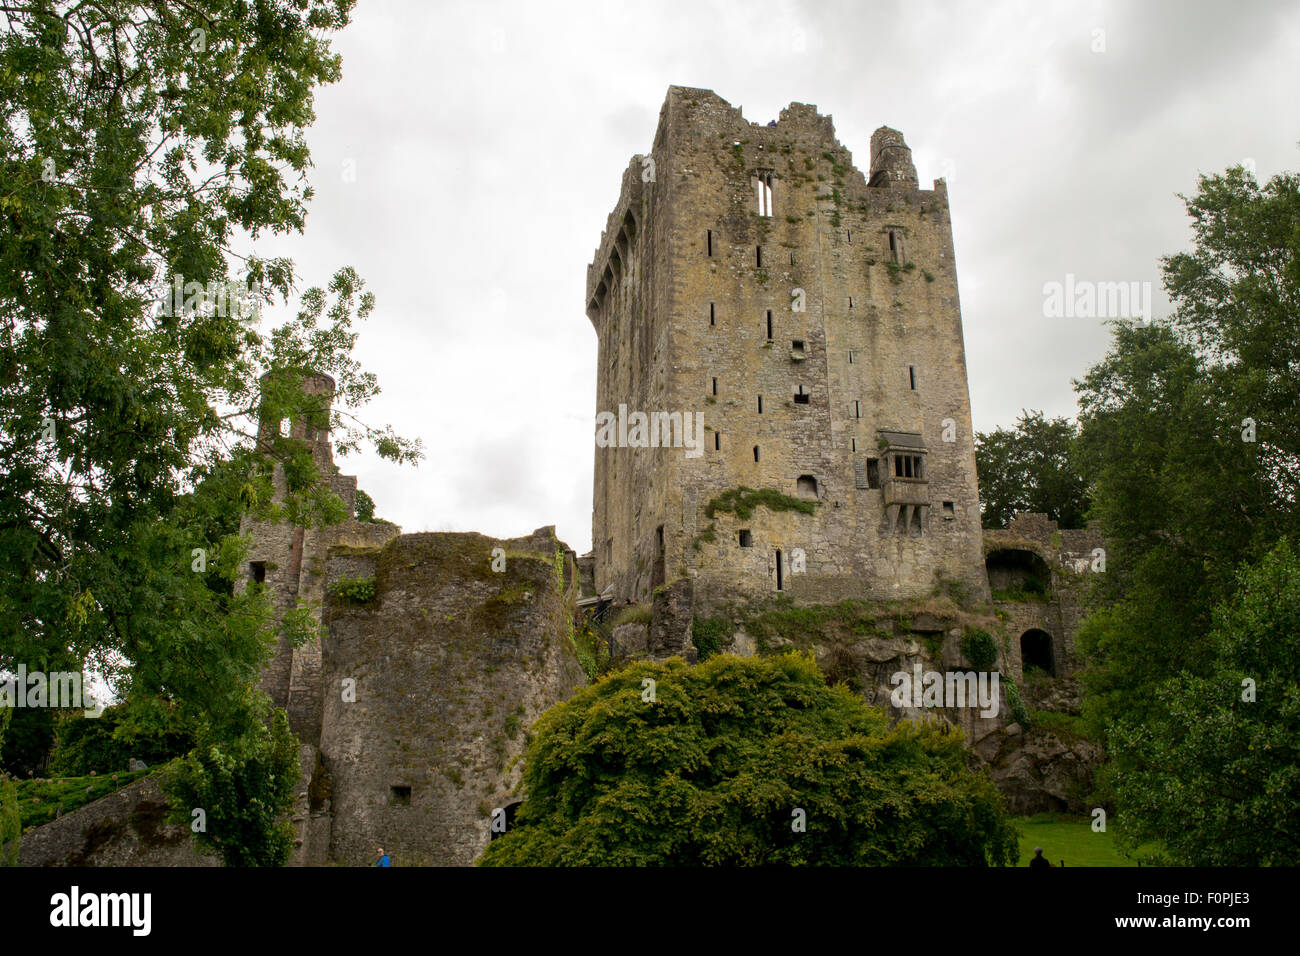 This is the Blarney castle in Cork, Ireland. - Stock Image